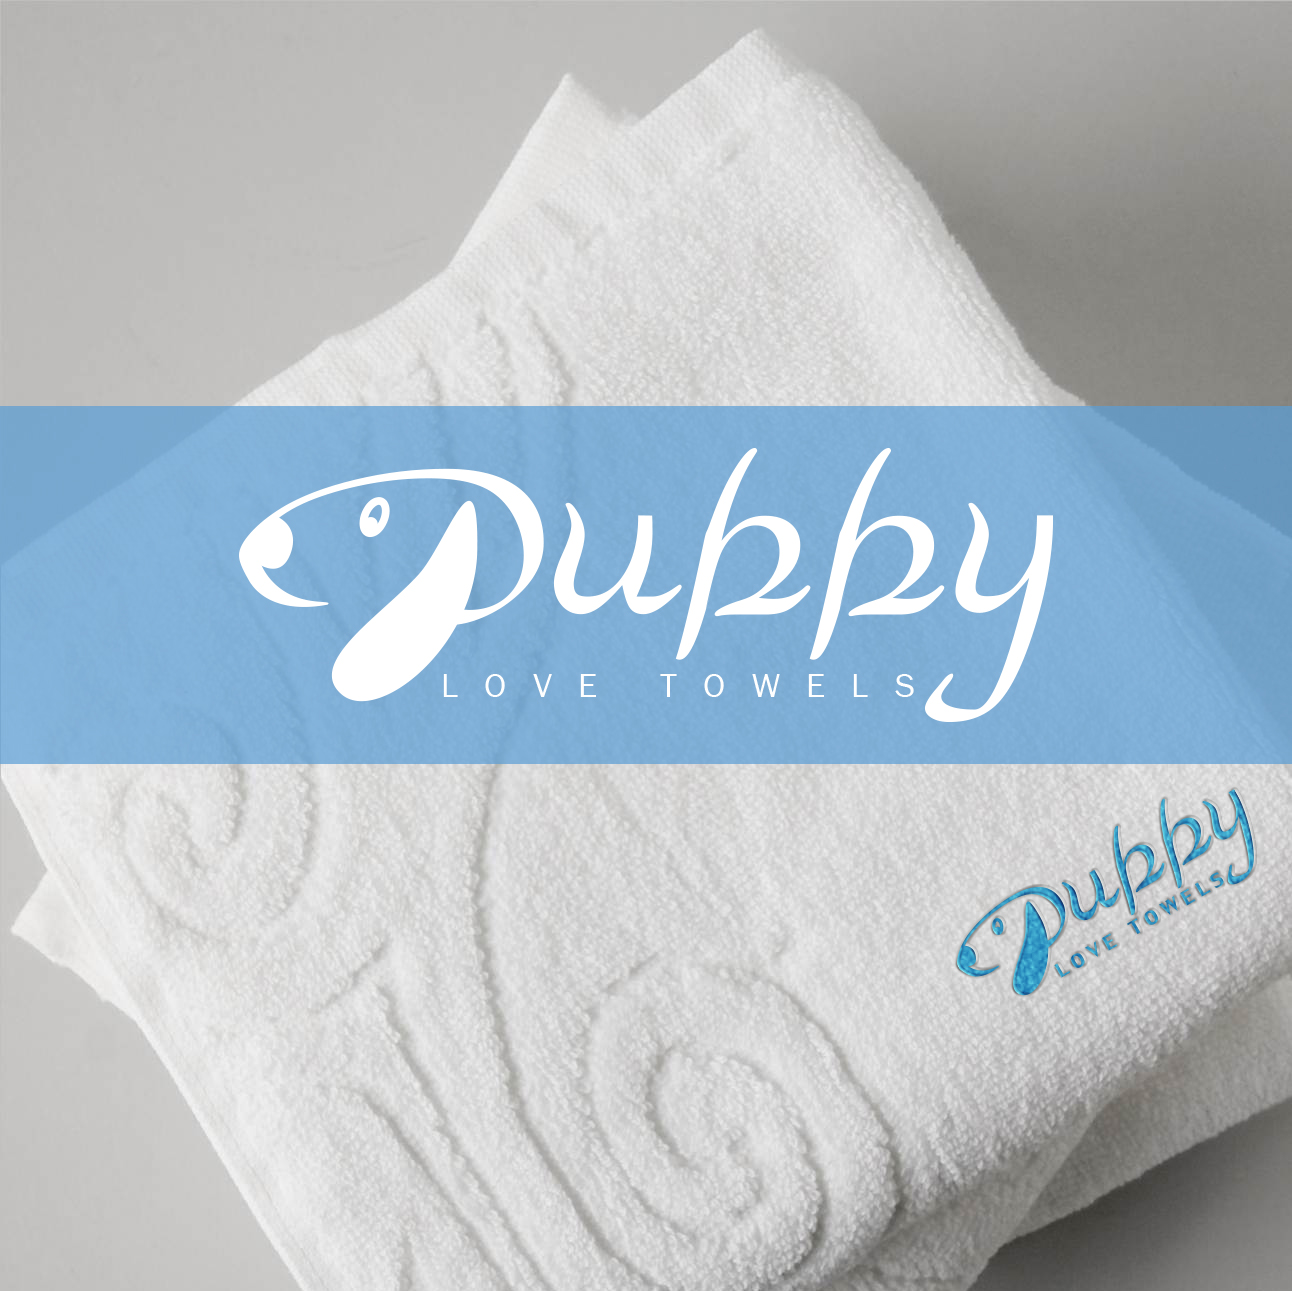 Logo Design by Yash Sindhav - Entry No. 36 in the Logo Design Contest Artistic Logo Design for Puppy Love Towels.